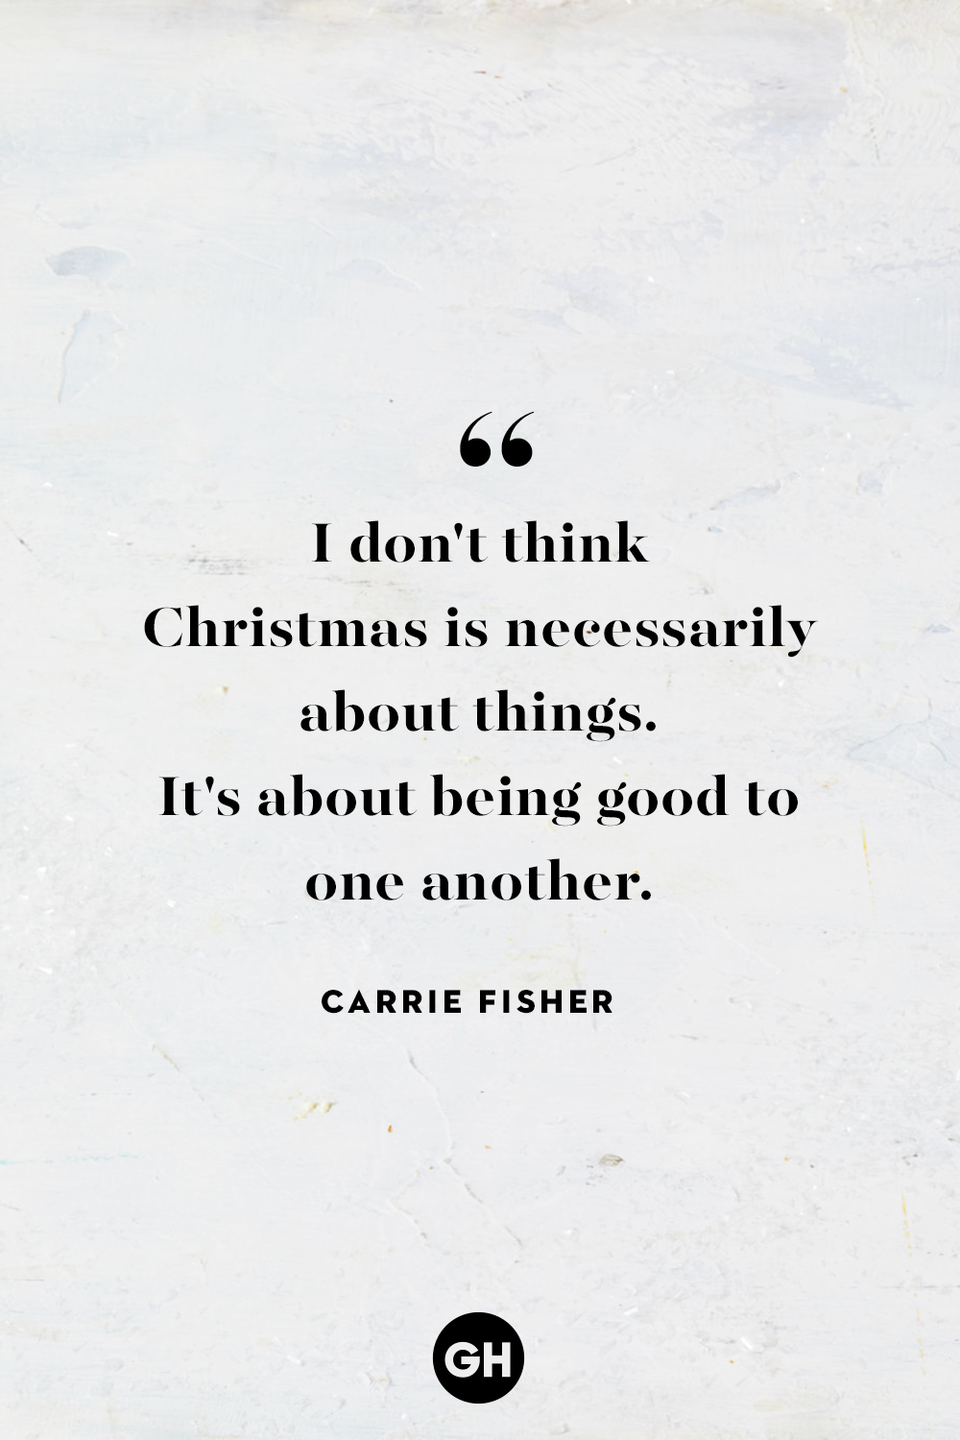 <p>I don't think Christmas is necessarily about things. It's about being good to one another. </p>